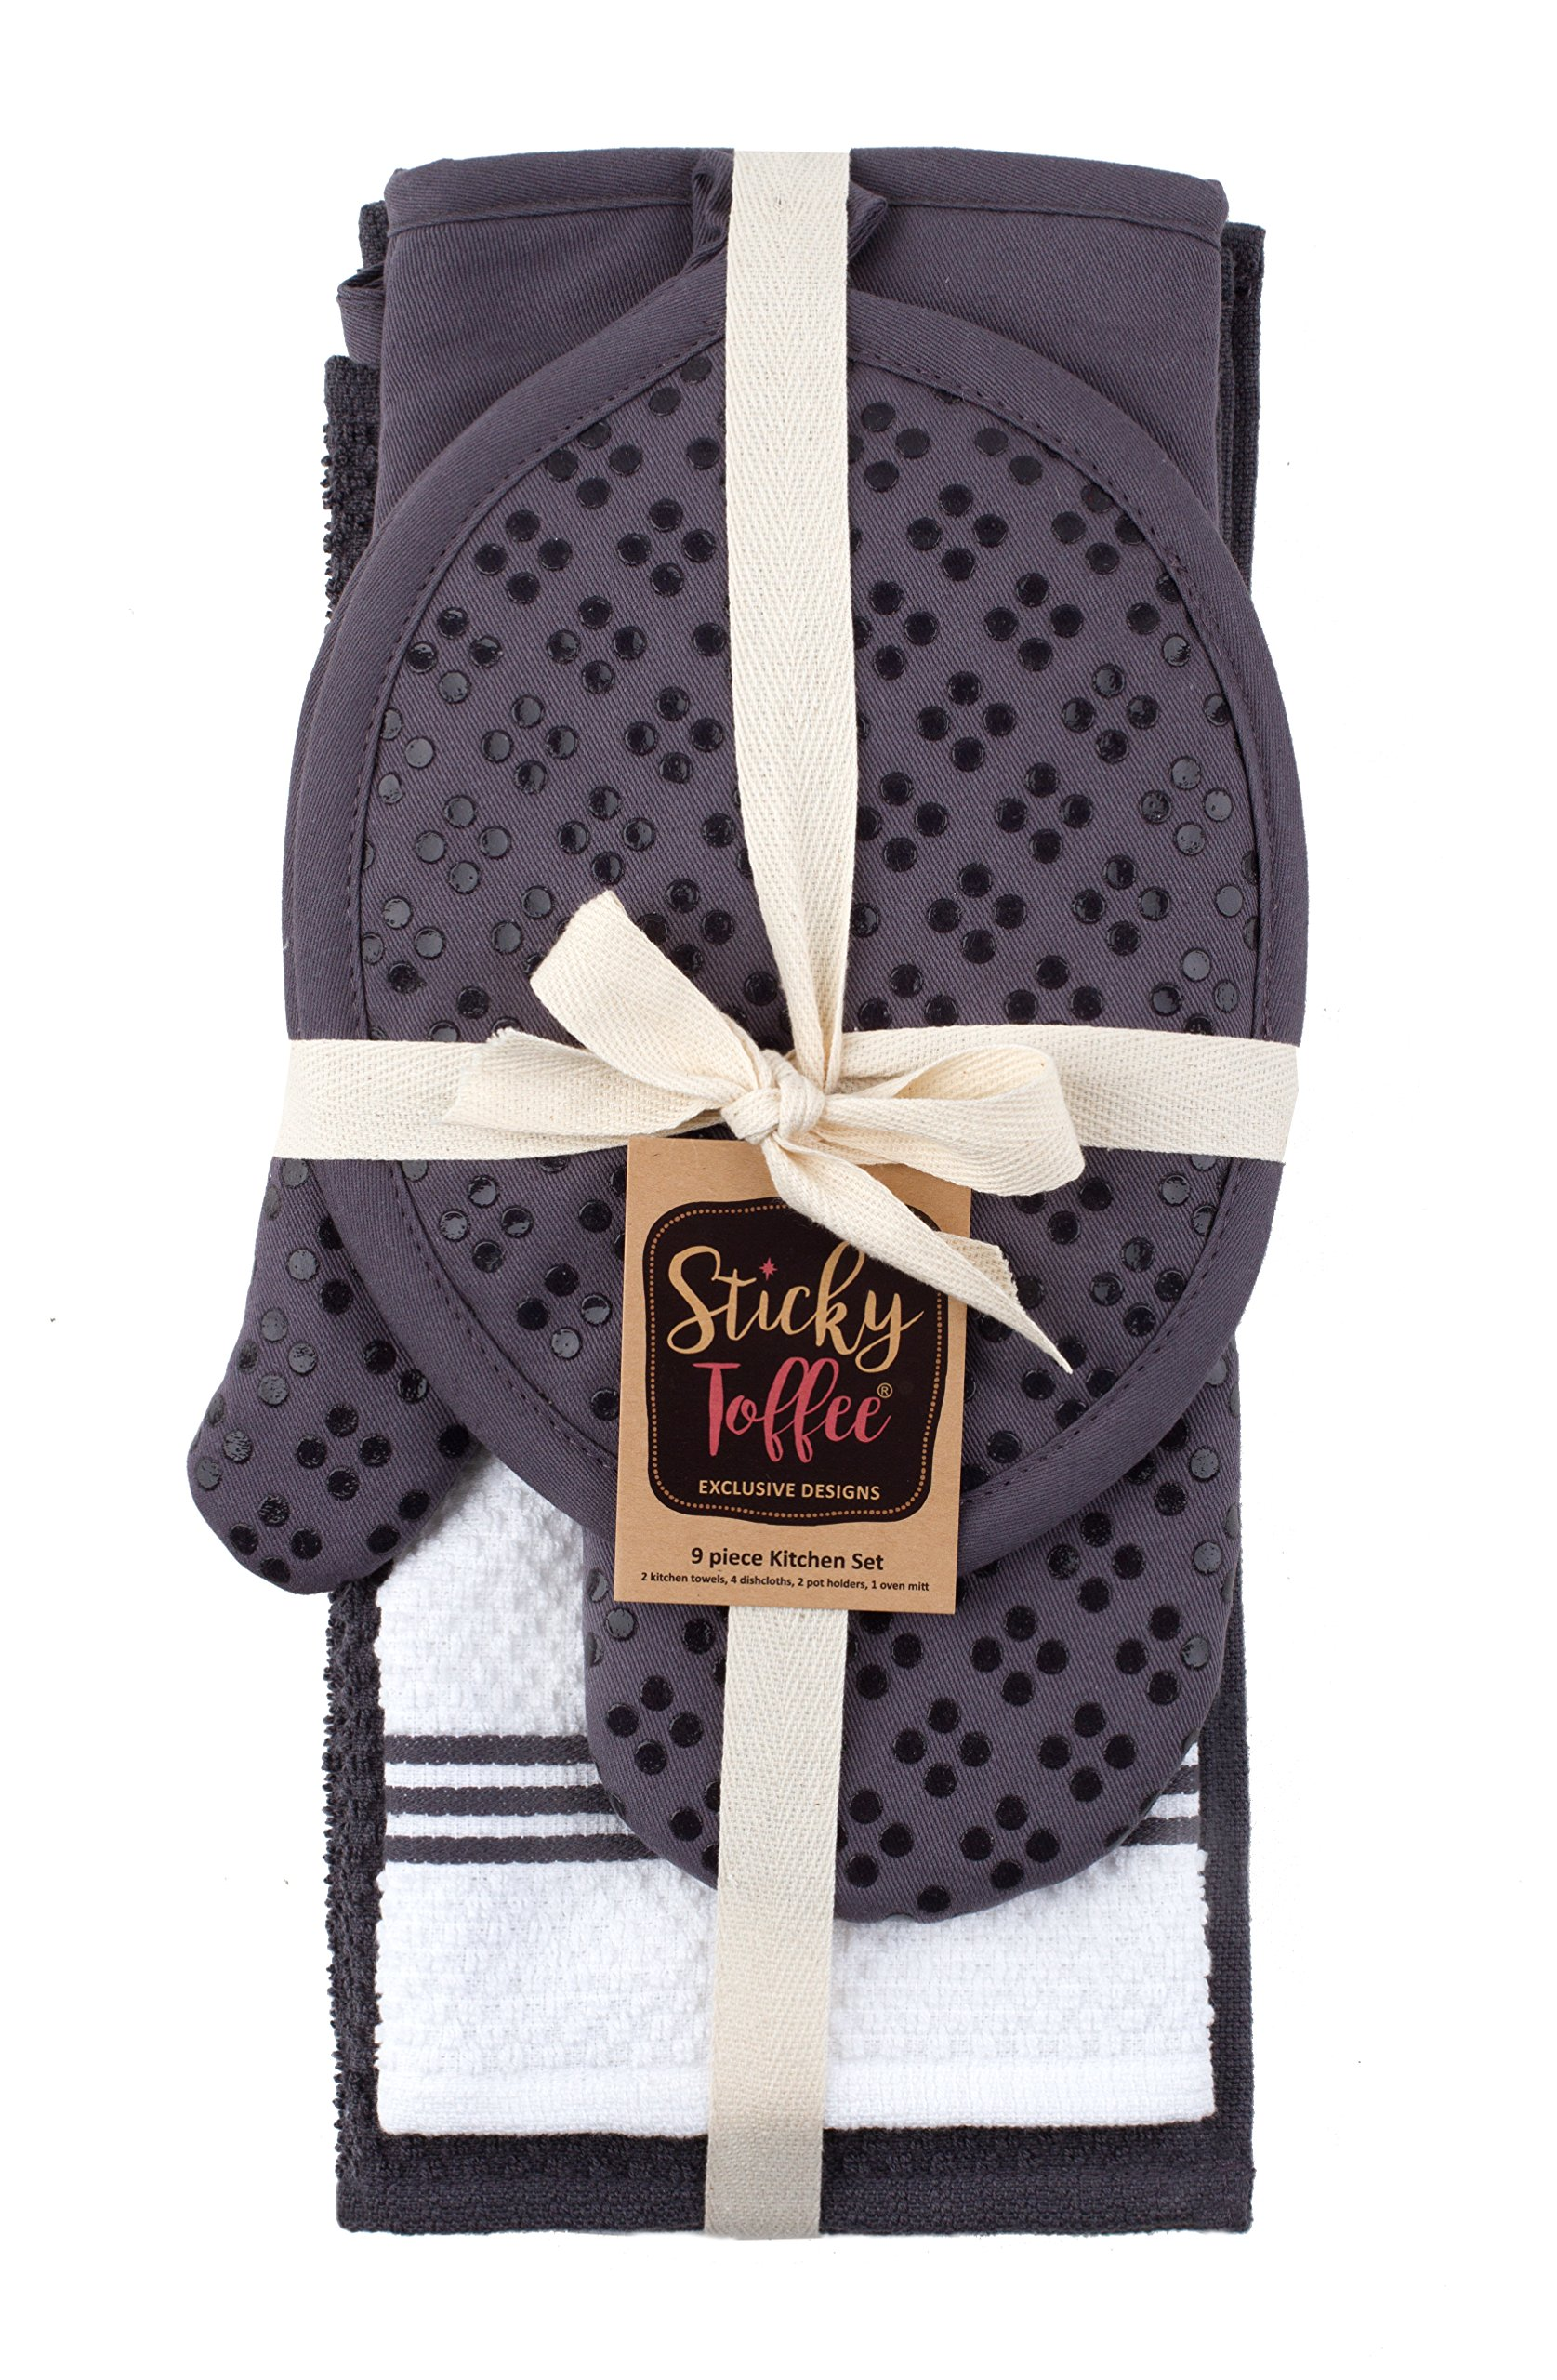 Sticky Toffee Silicone Printed Oven Mitt & Pot Holder, Cotton Terry Kitchen Dish Towel & Dishcloth, Gray, 9 Piece Set by Sticky Toffee (Image #8)